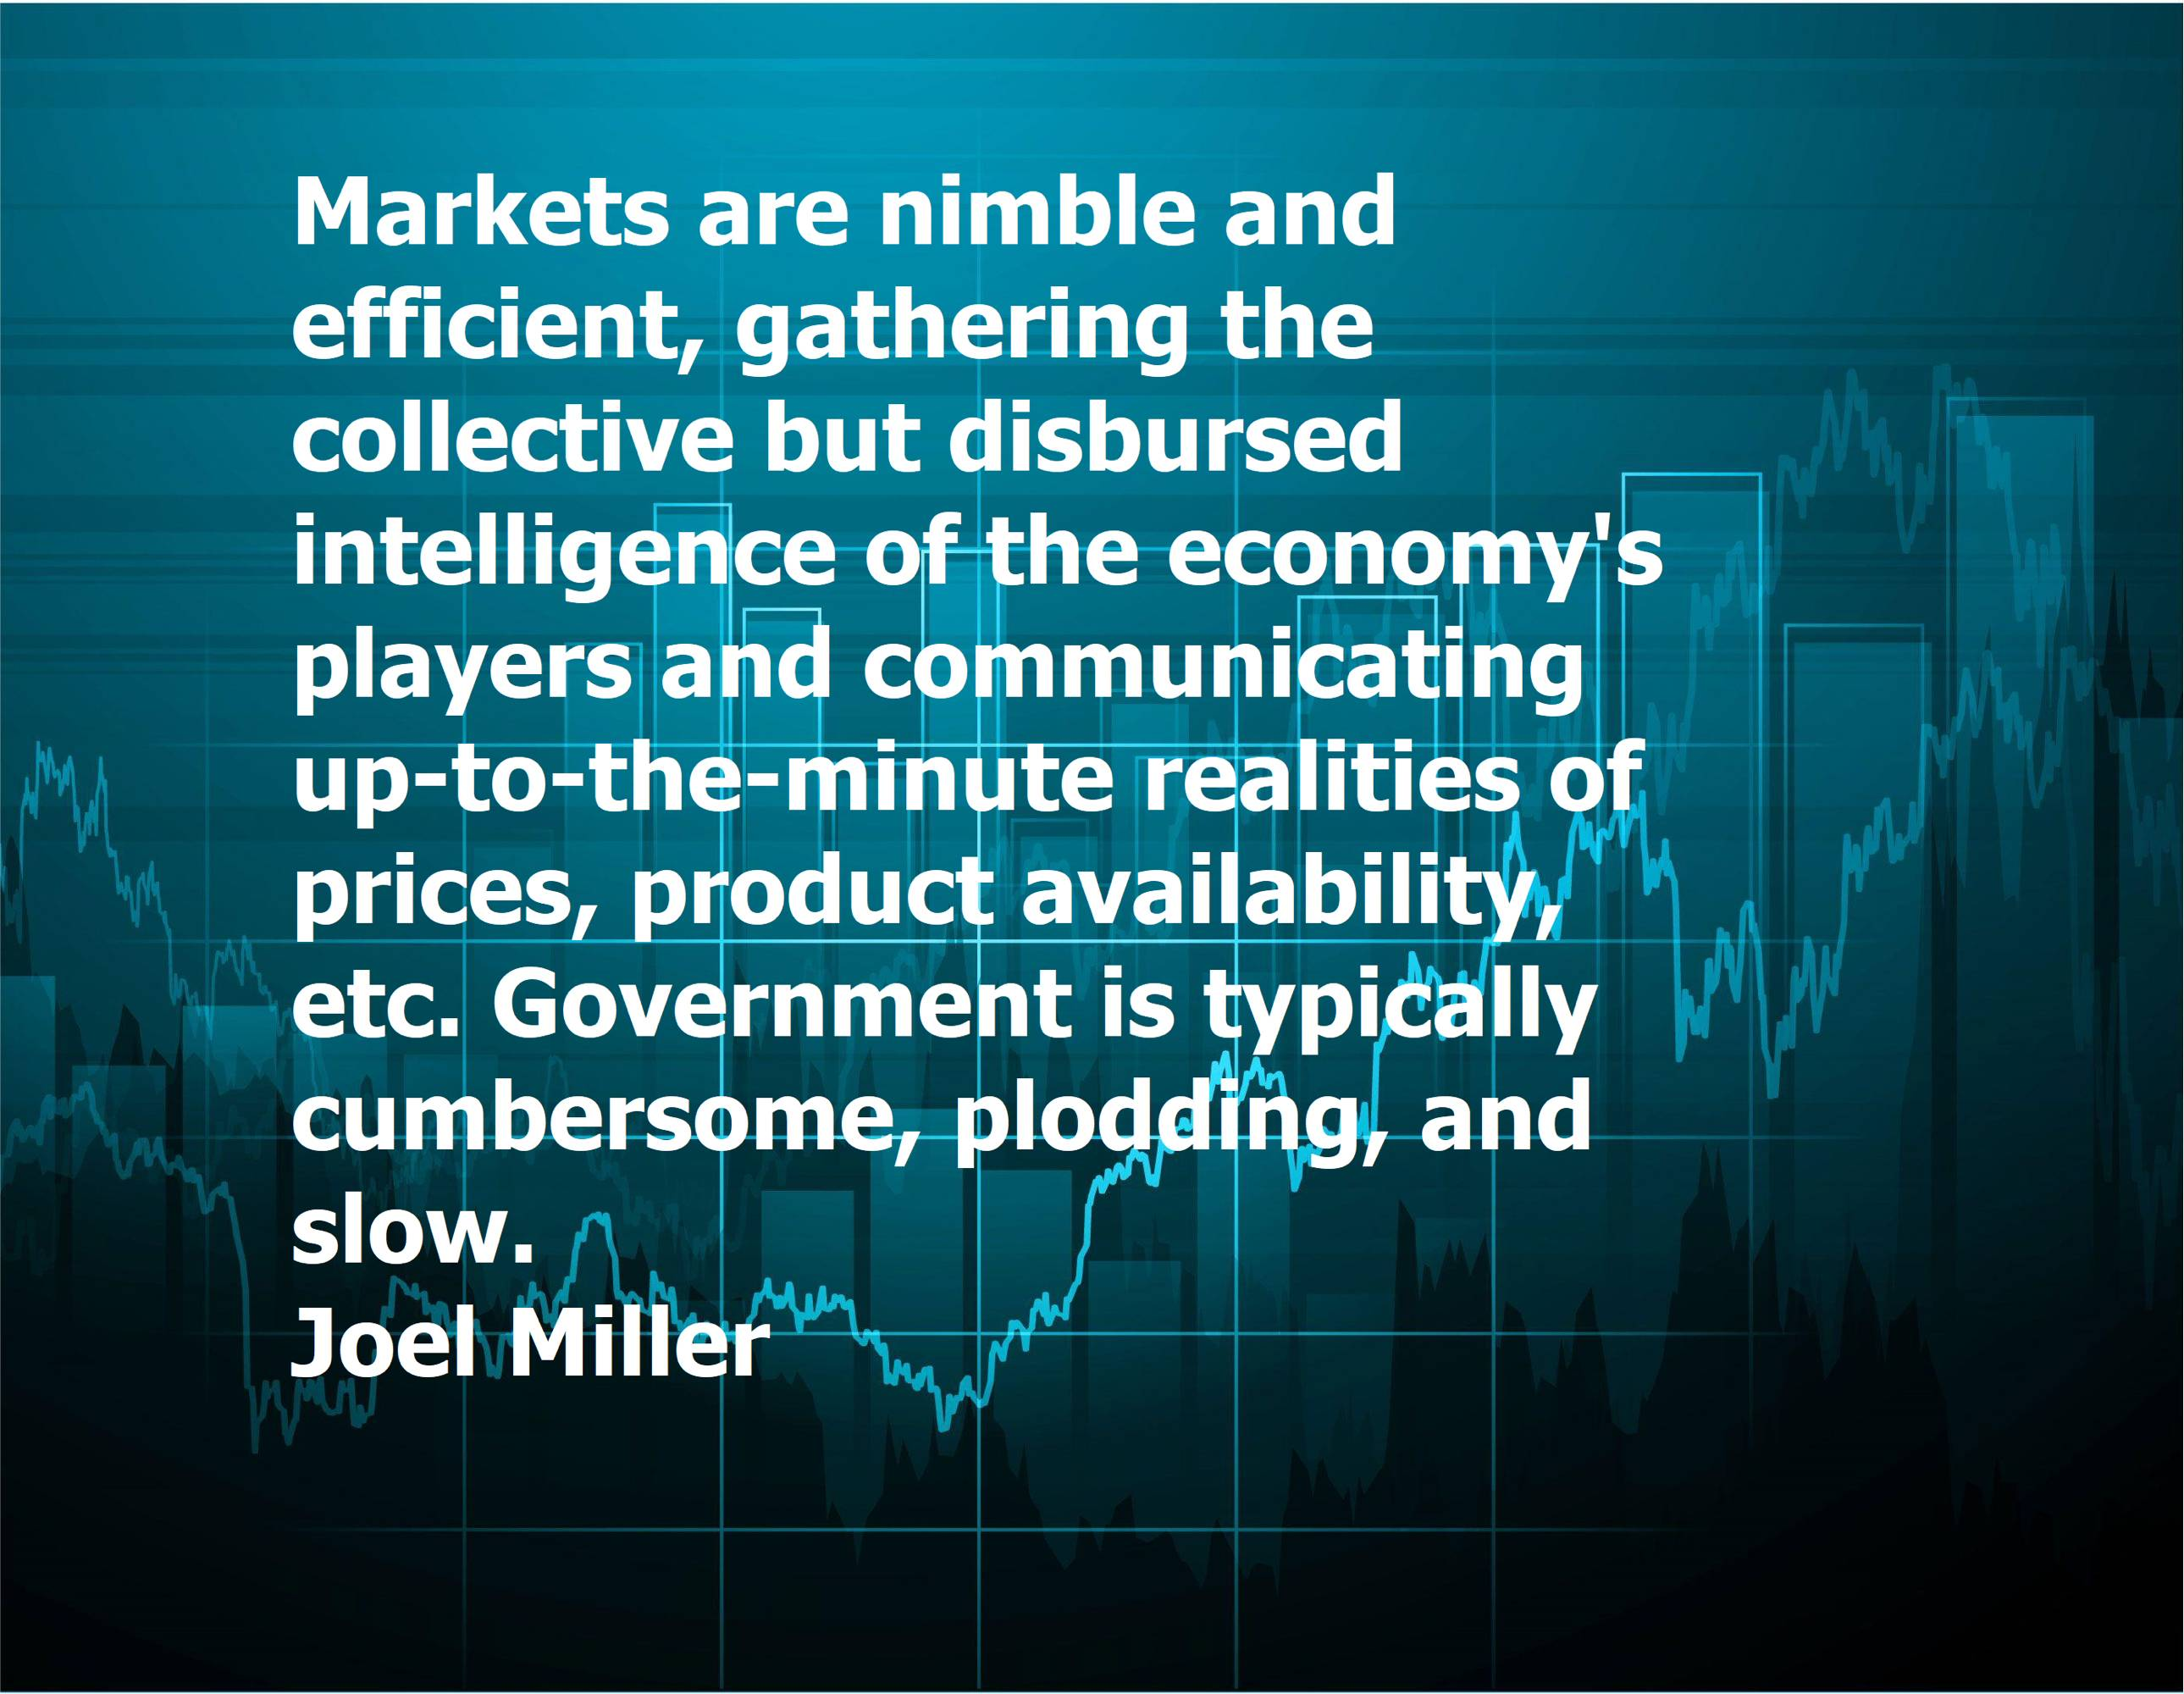 """Markets are nimble and efficient, gathering the collective but disbursed intelligence of the economy's players and communicating up-to-the-minute realities of prices, product availability, etc. Government is typically cumbersome, plodding, and slow."" – Joel Miller [2800×2171]"